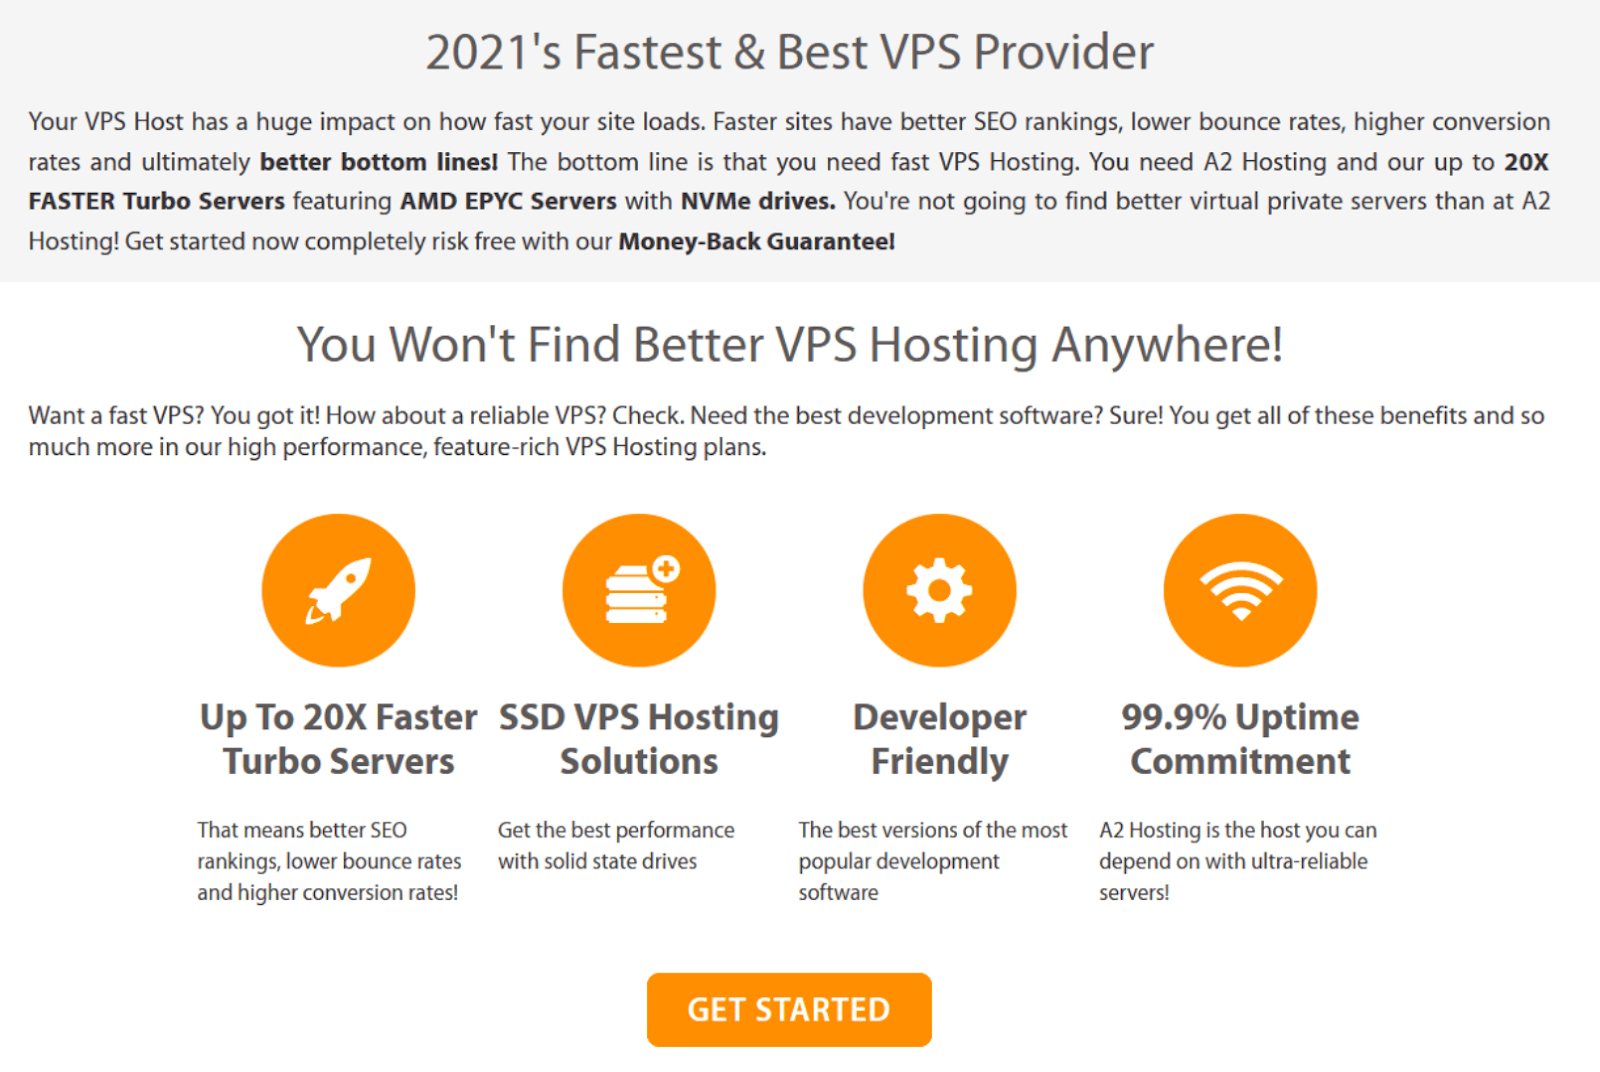 A2 Hosting - VPS hosting features